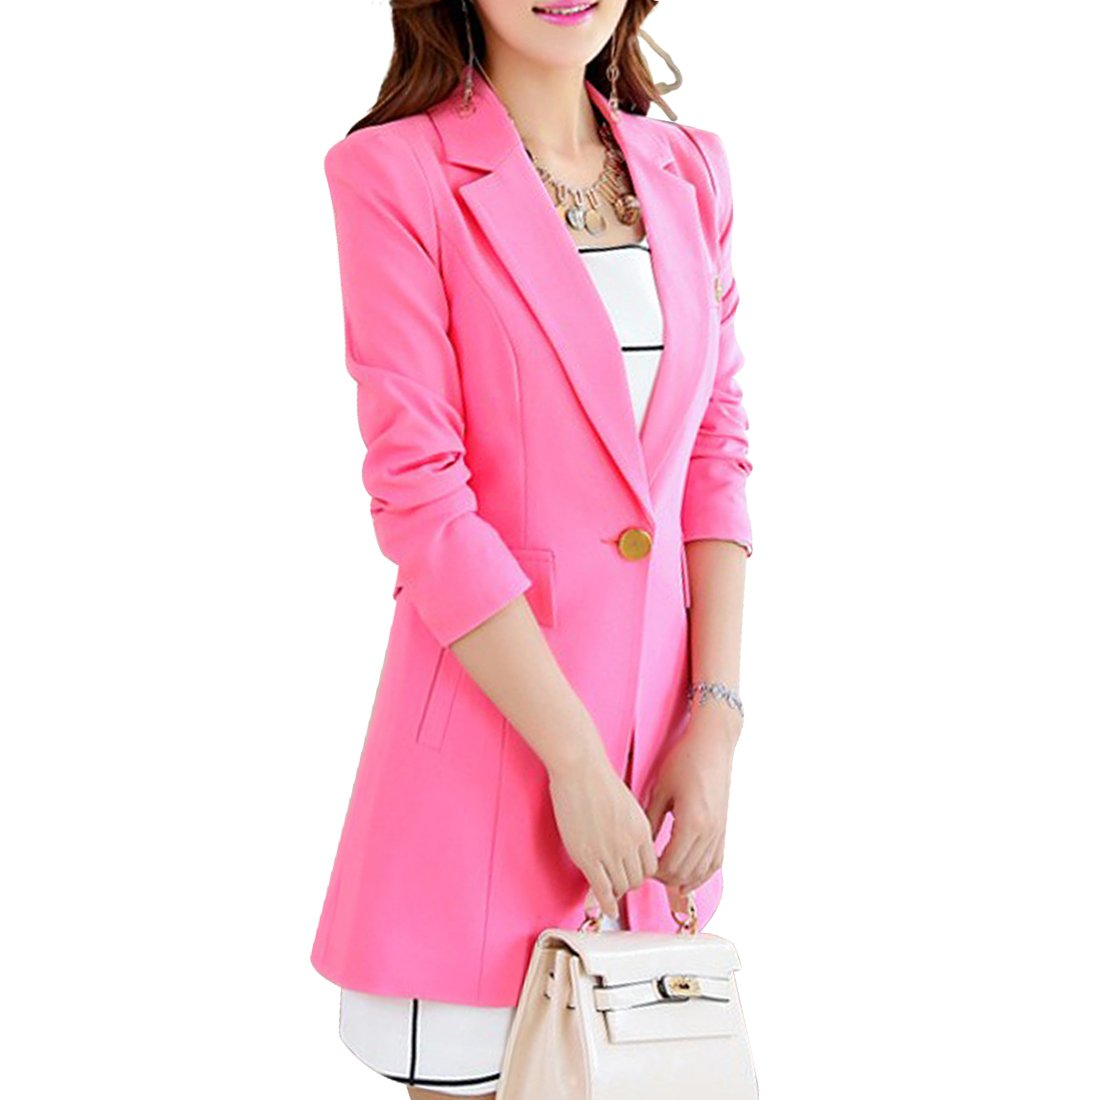 Aisuper Womens Blazer Long Slim One Button Jacket Suit Outerwear